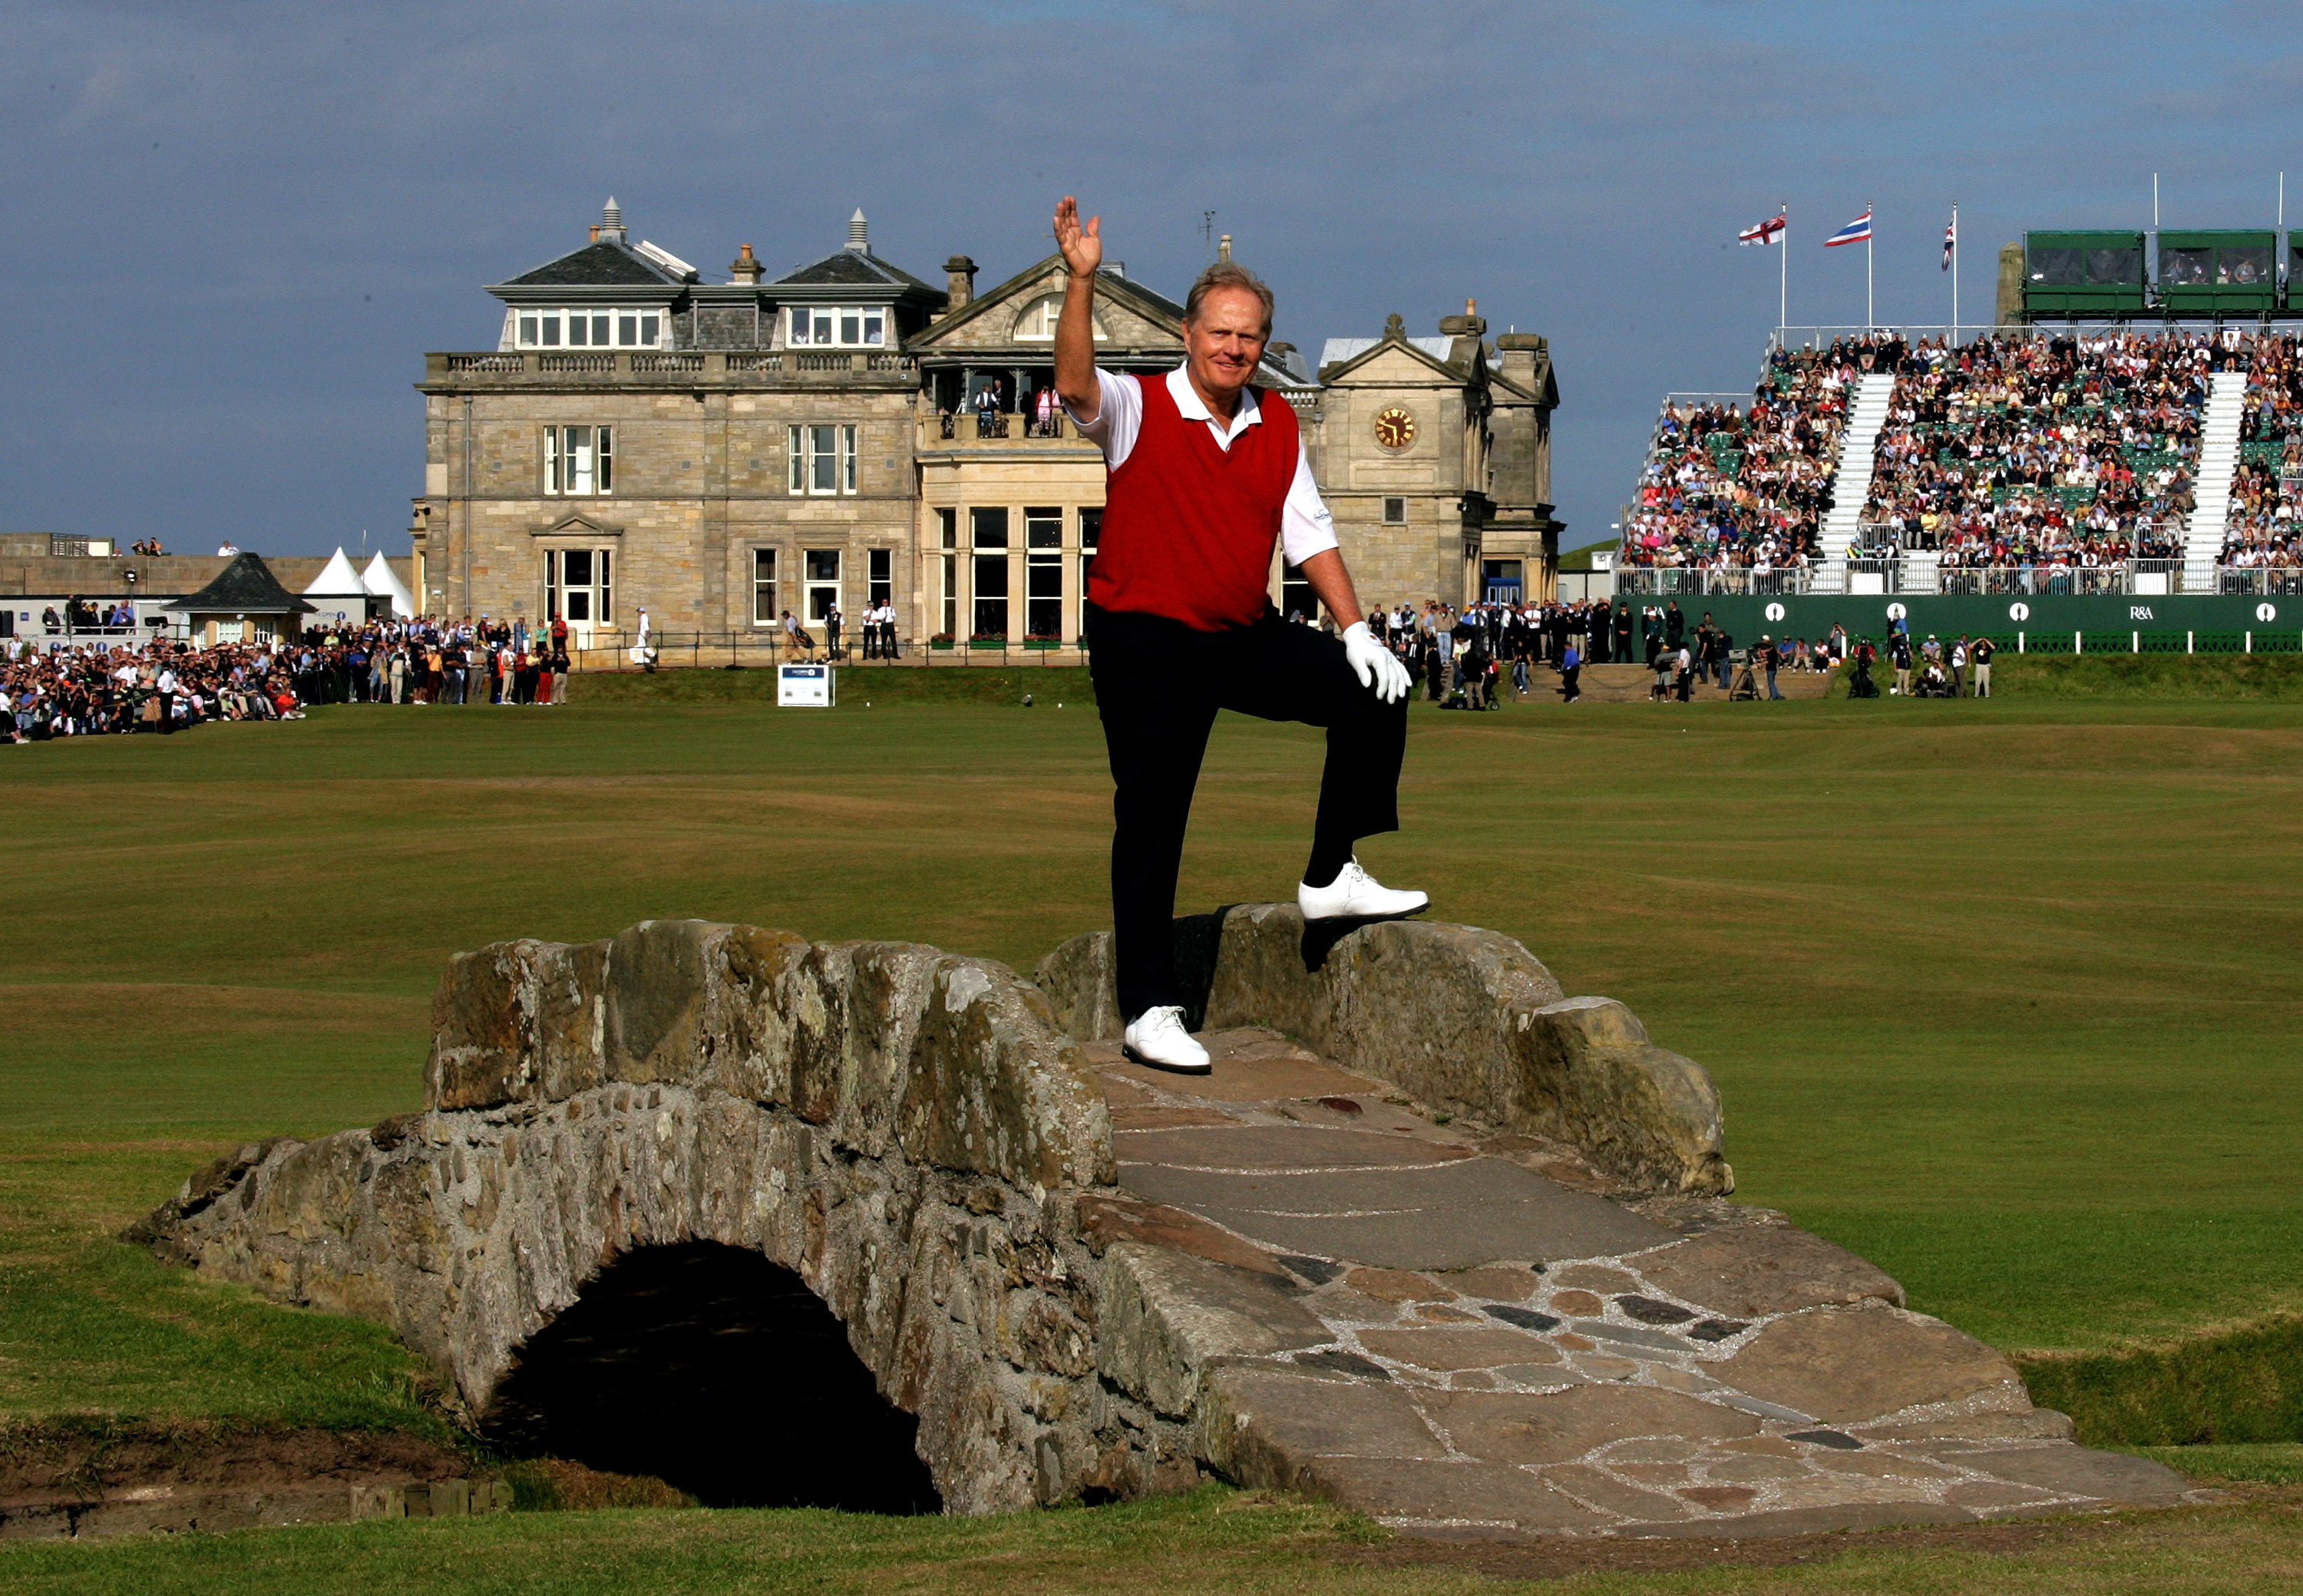 Jack Nicklaus won the Open at St Andrews in 1970 and 1978 (Photo: Getty Images)